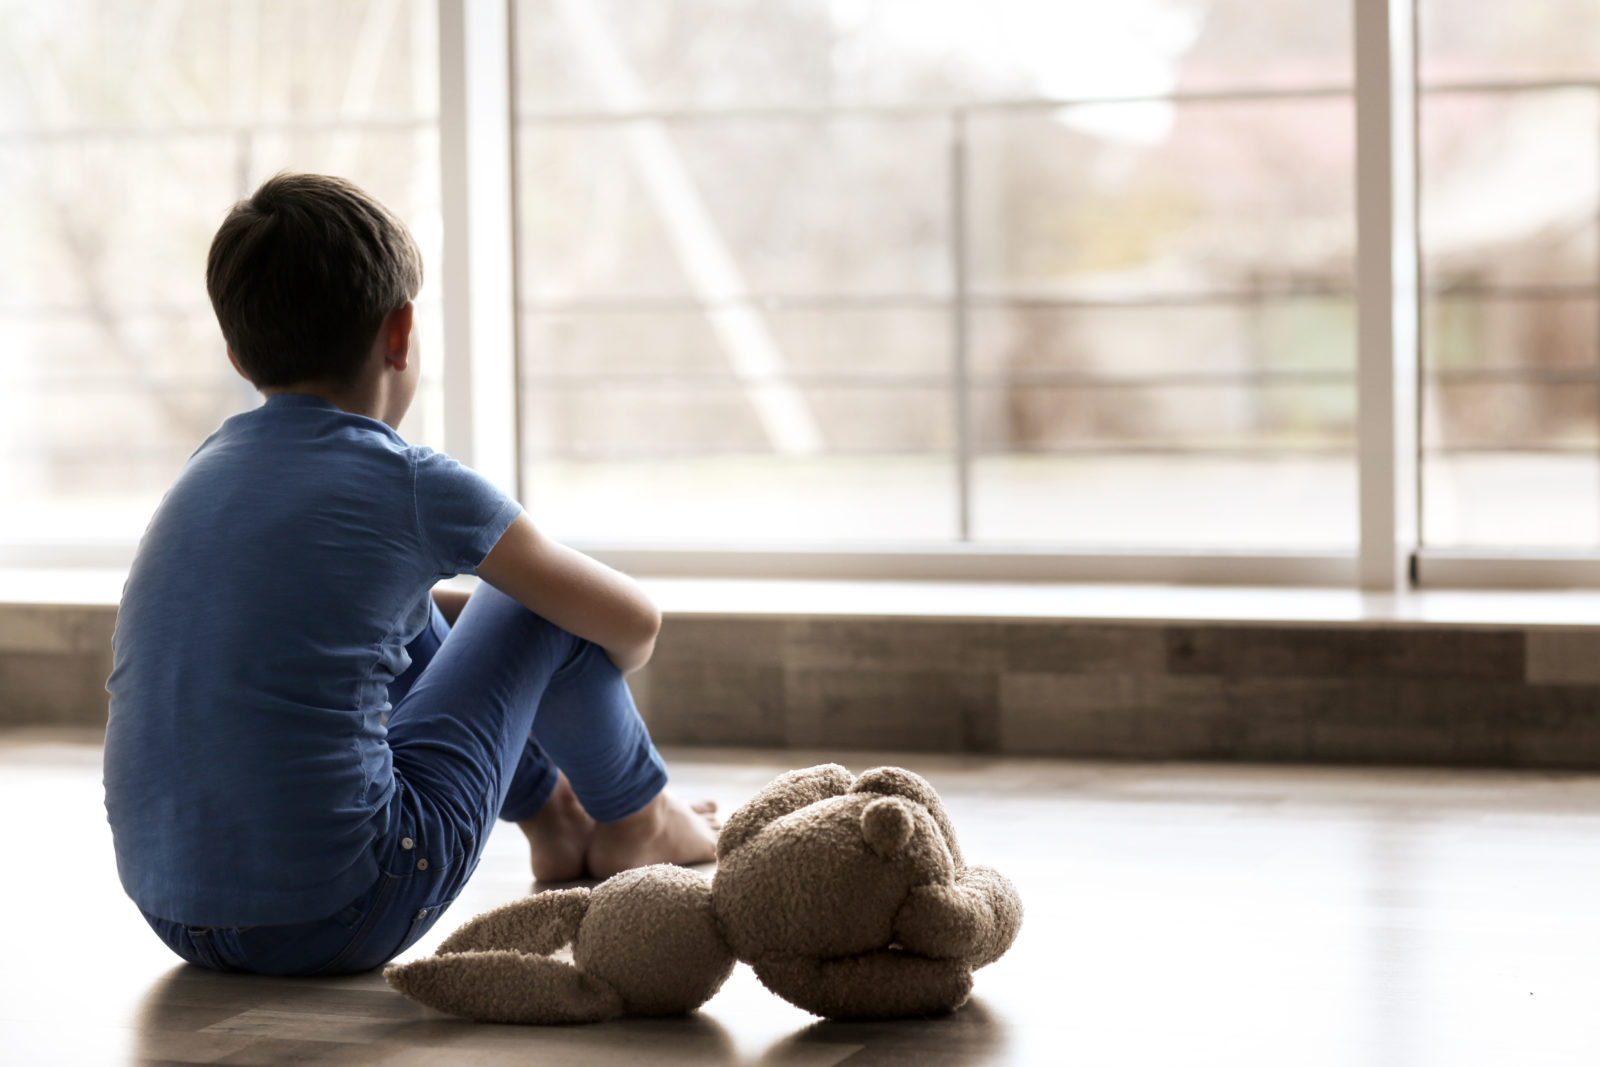 Image of Depressed Child from Butterfly Beginnings Play Therapy in Davenport, Iowa Kim Feeney